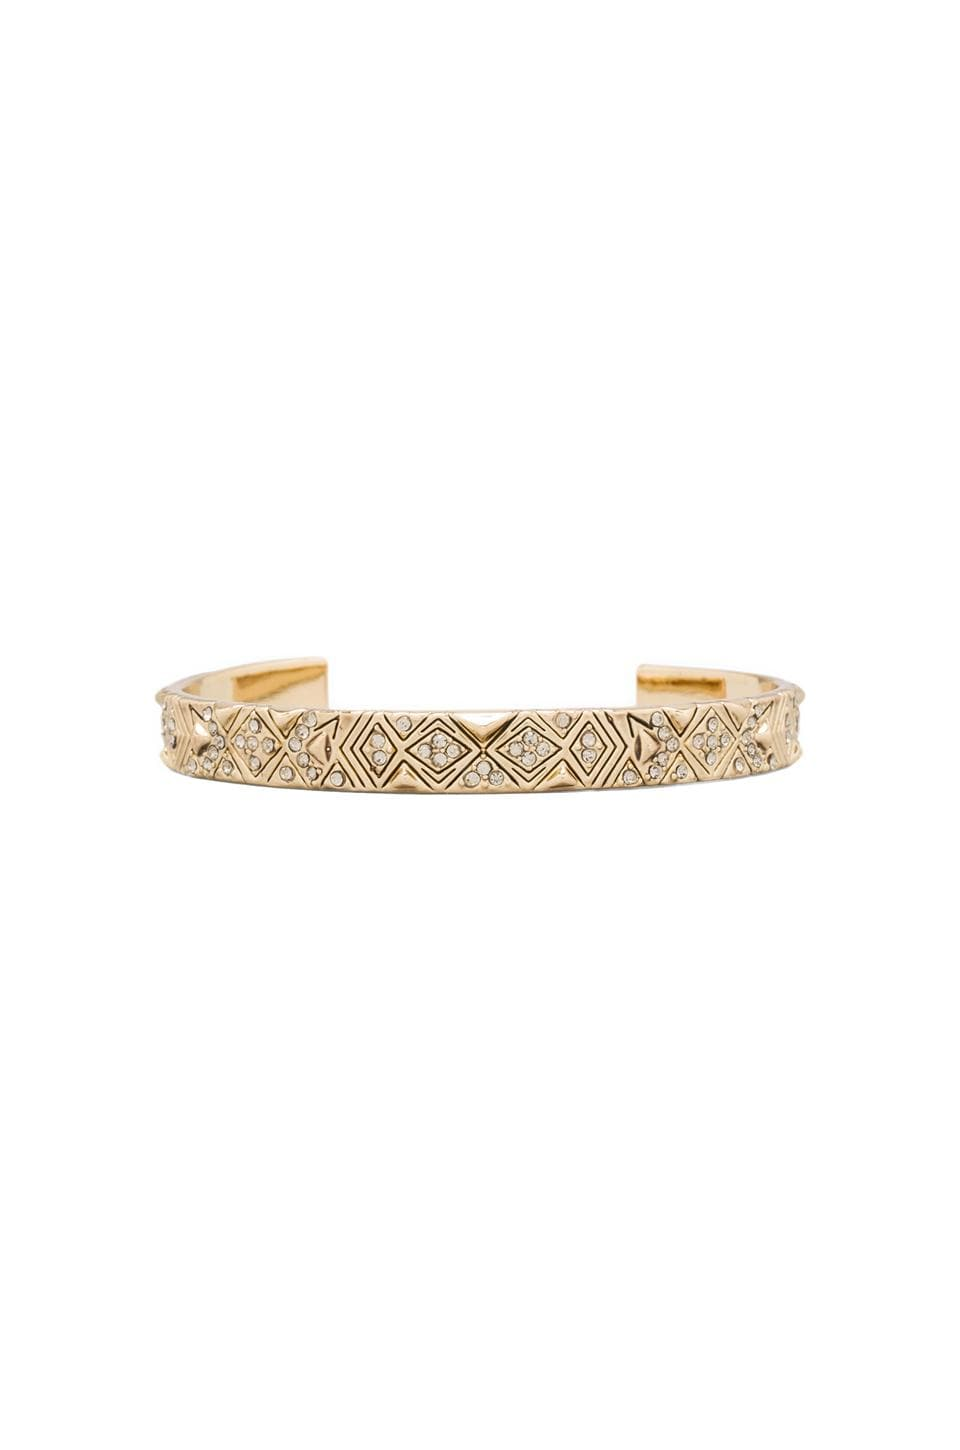 House of Harlow Engraved Kilim Cuff in Gold